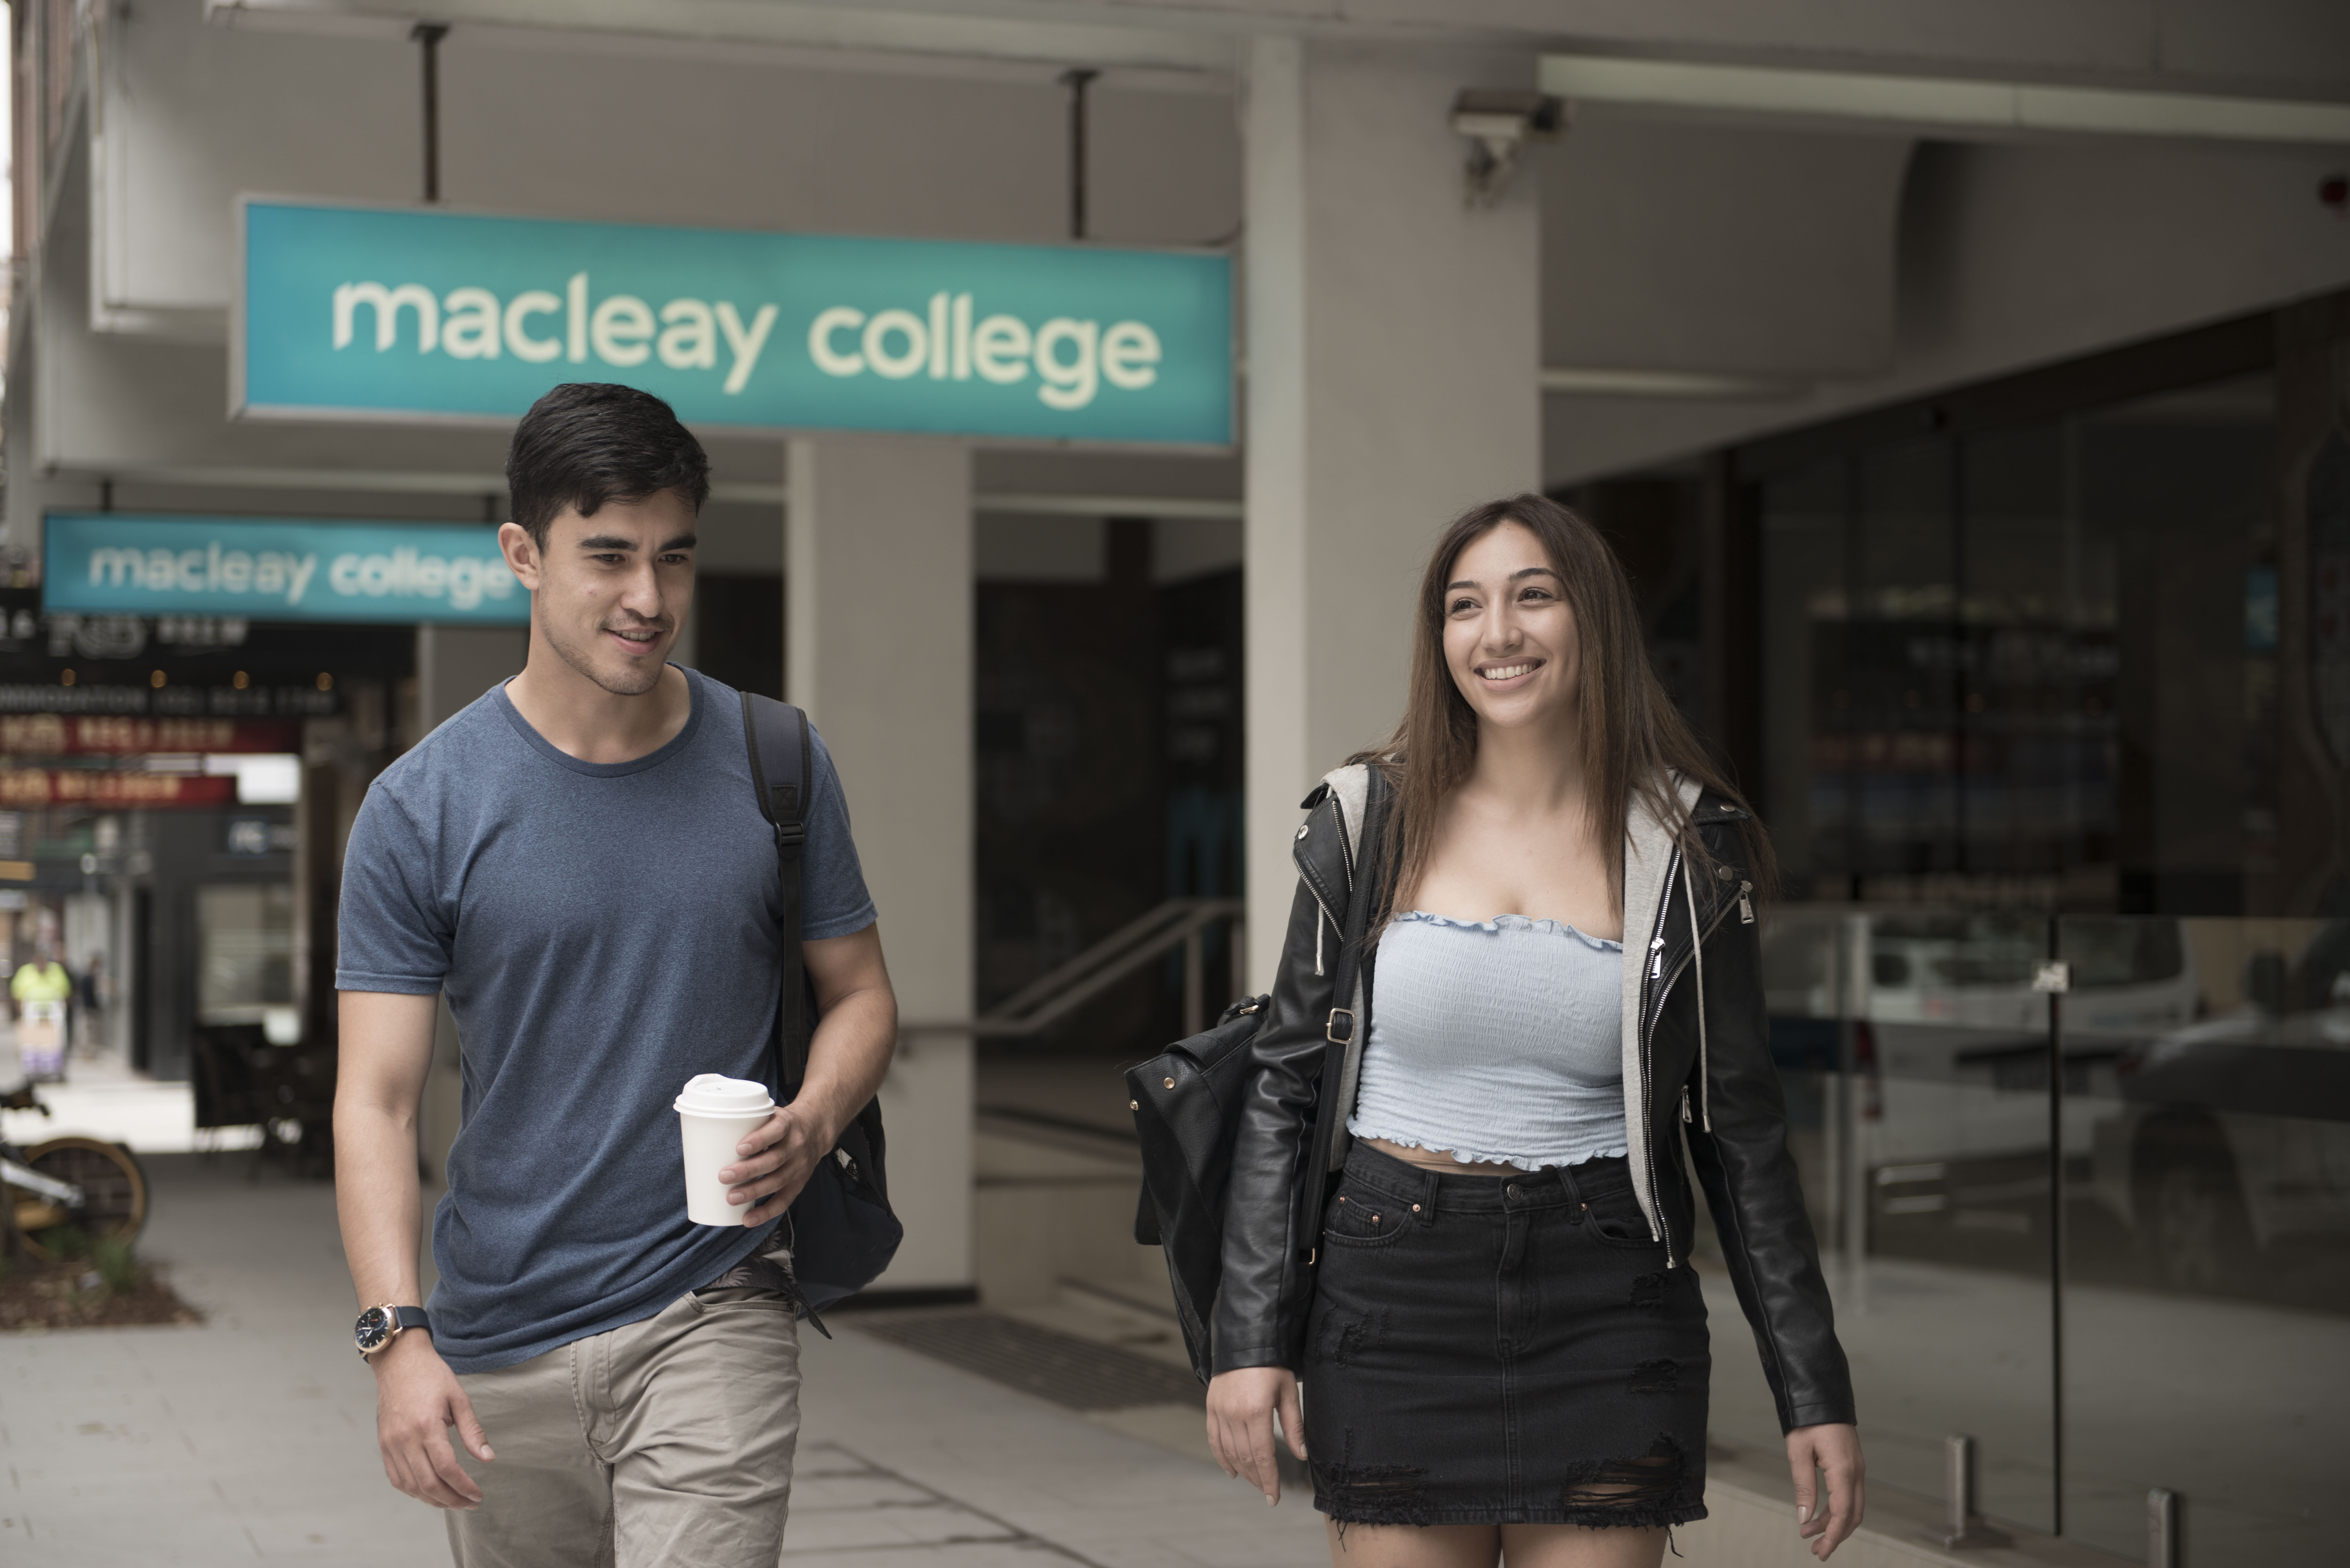 Macleay College Sydney and Melbourne